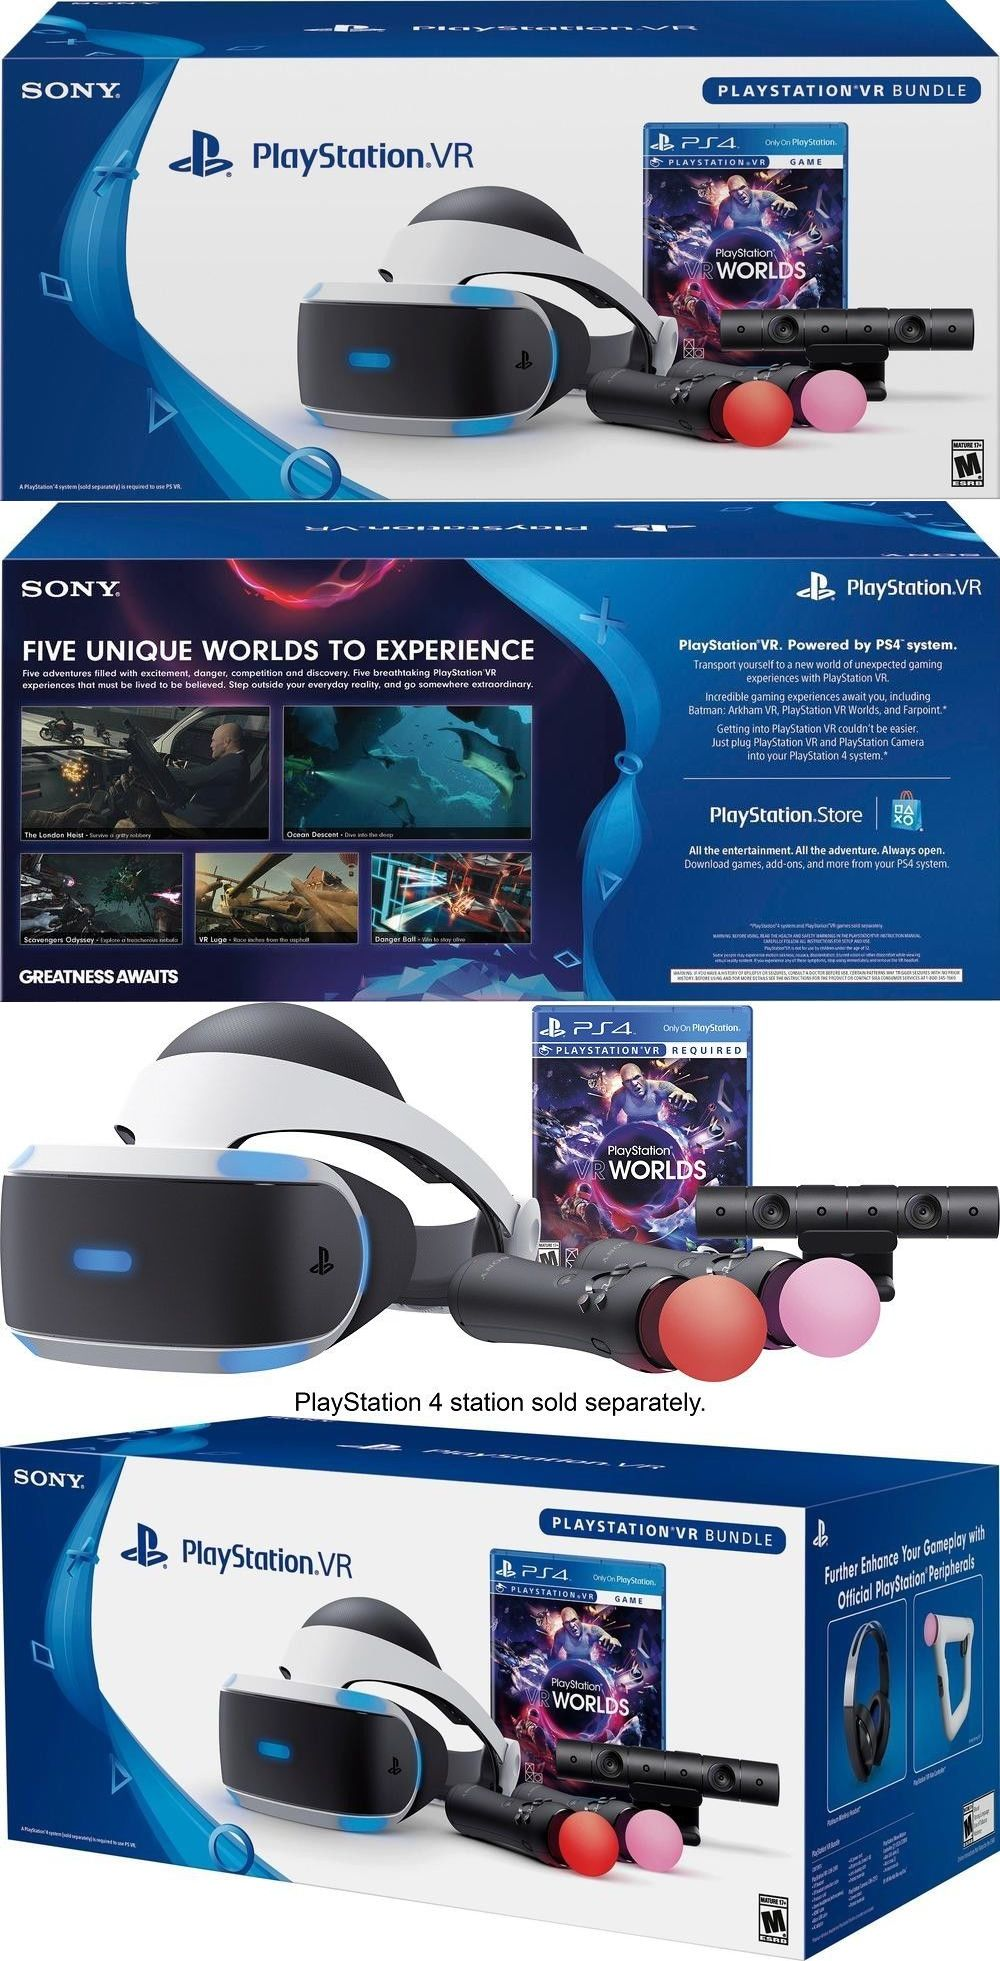 PC and Console VR Headsets: Brand New Playstation 4 Vr Launch Bundle